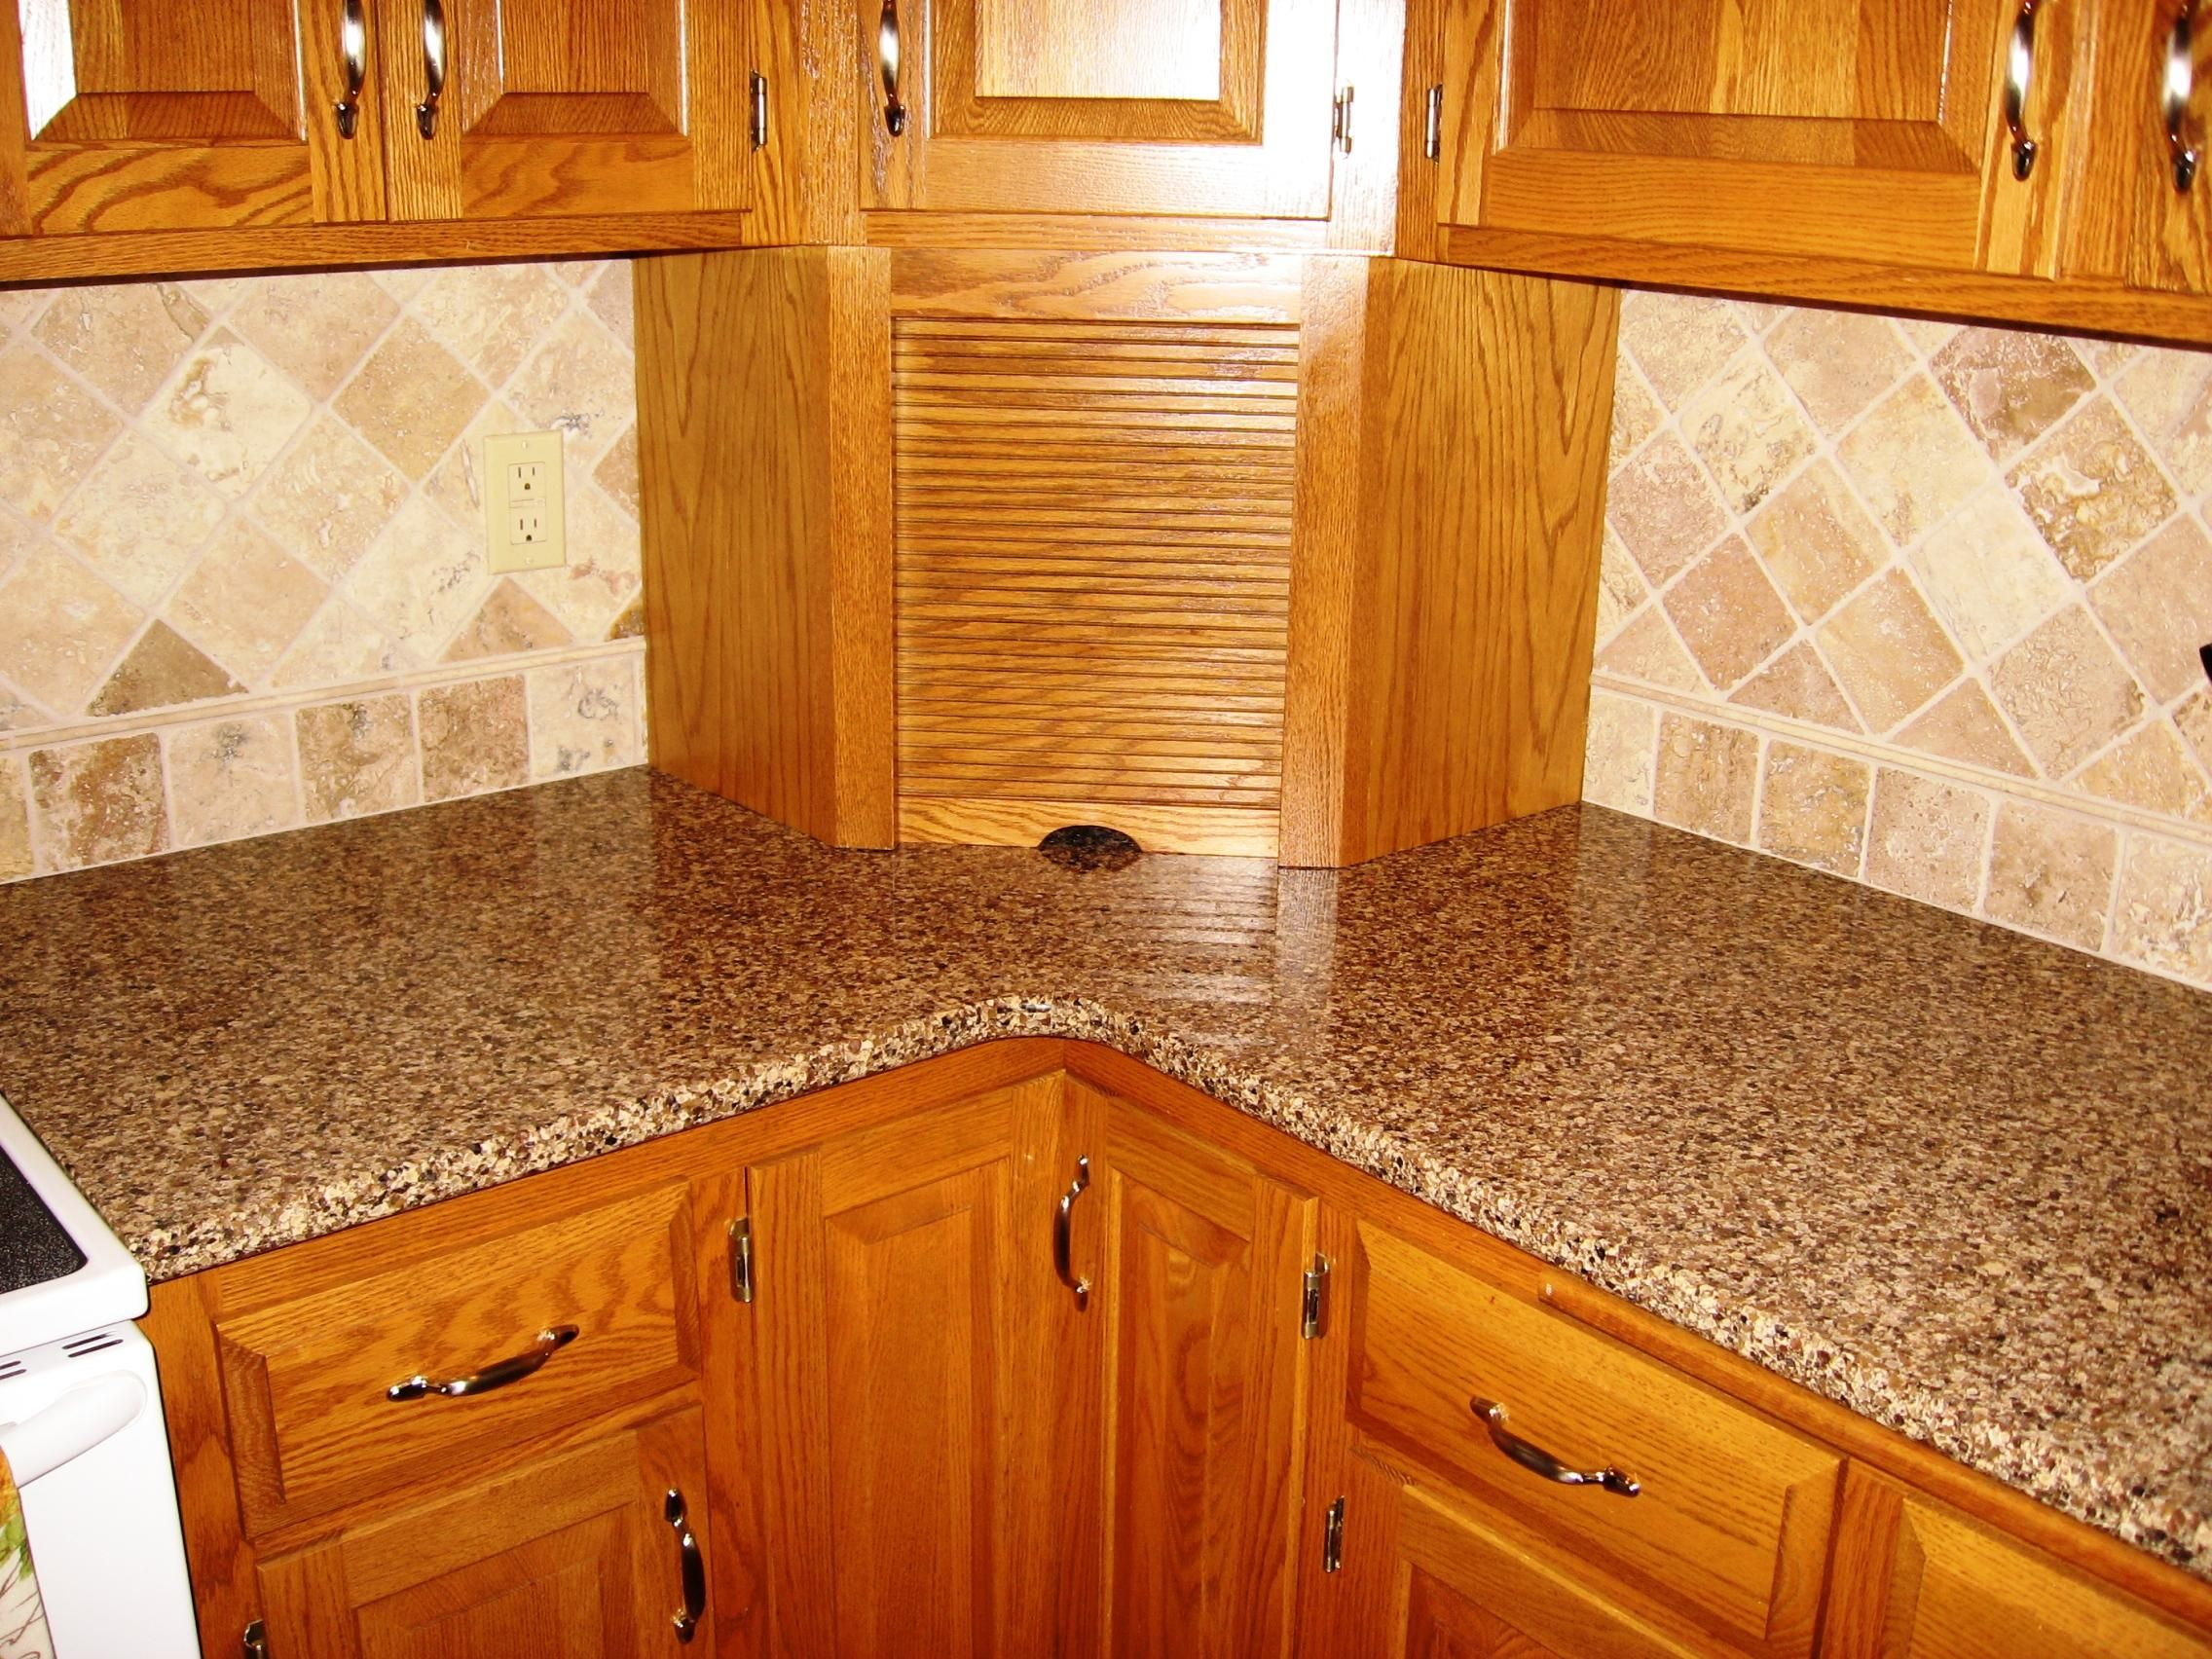 Stone Countertops Near Me : on Pinterest Faux granite countertops, Granite countertops near me ...